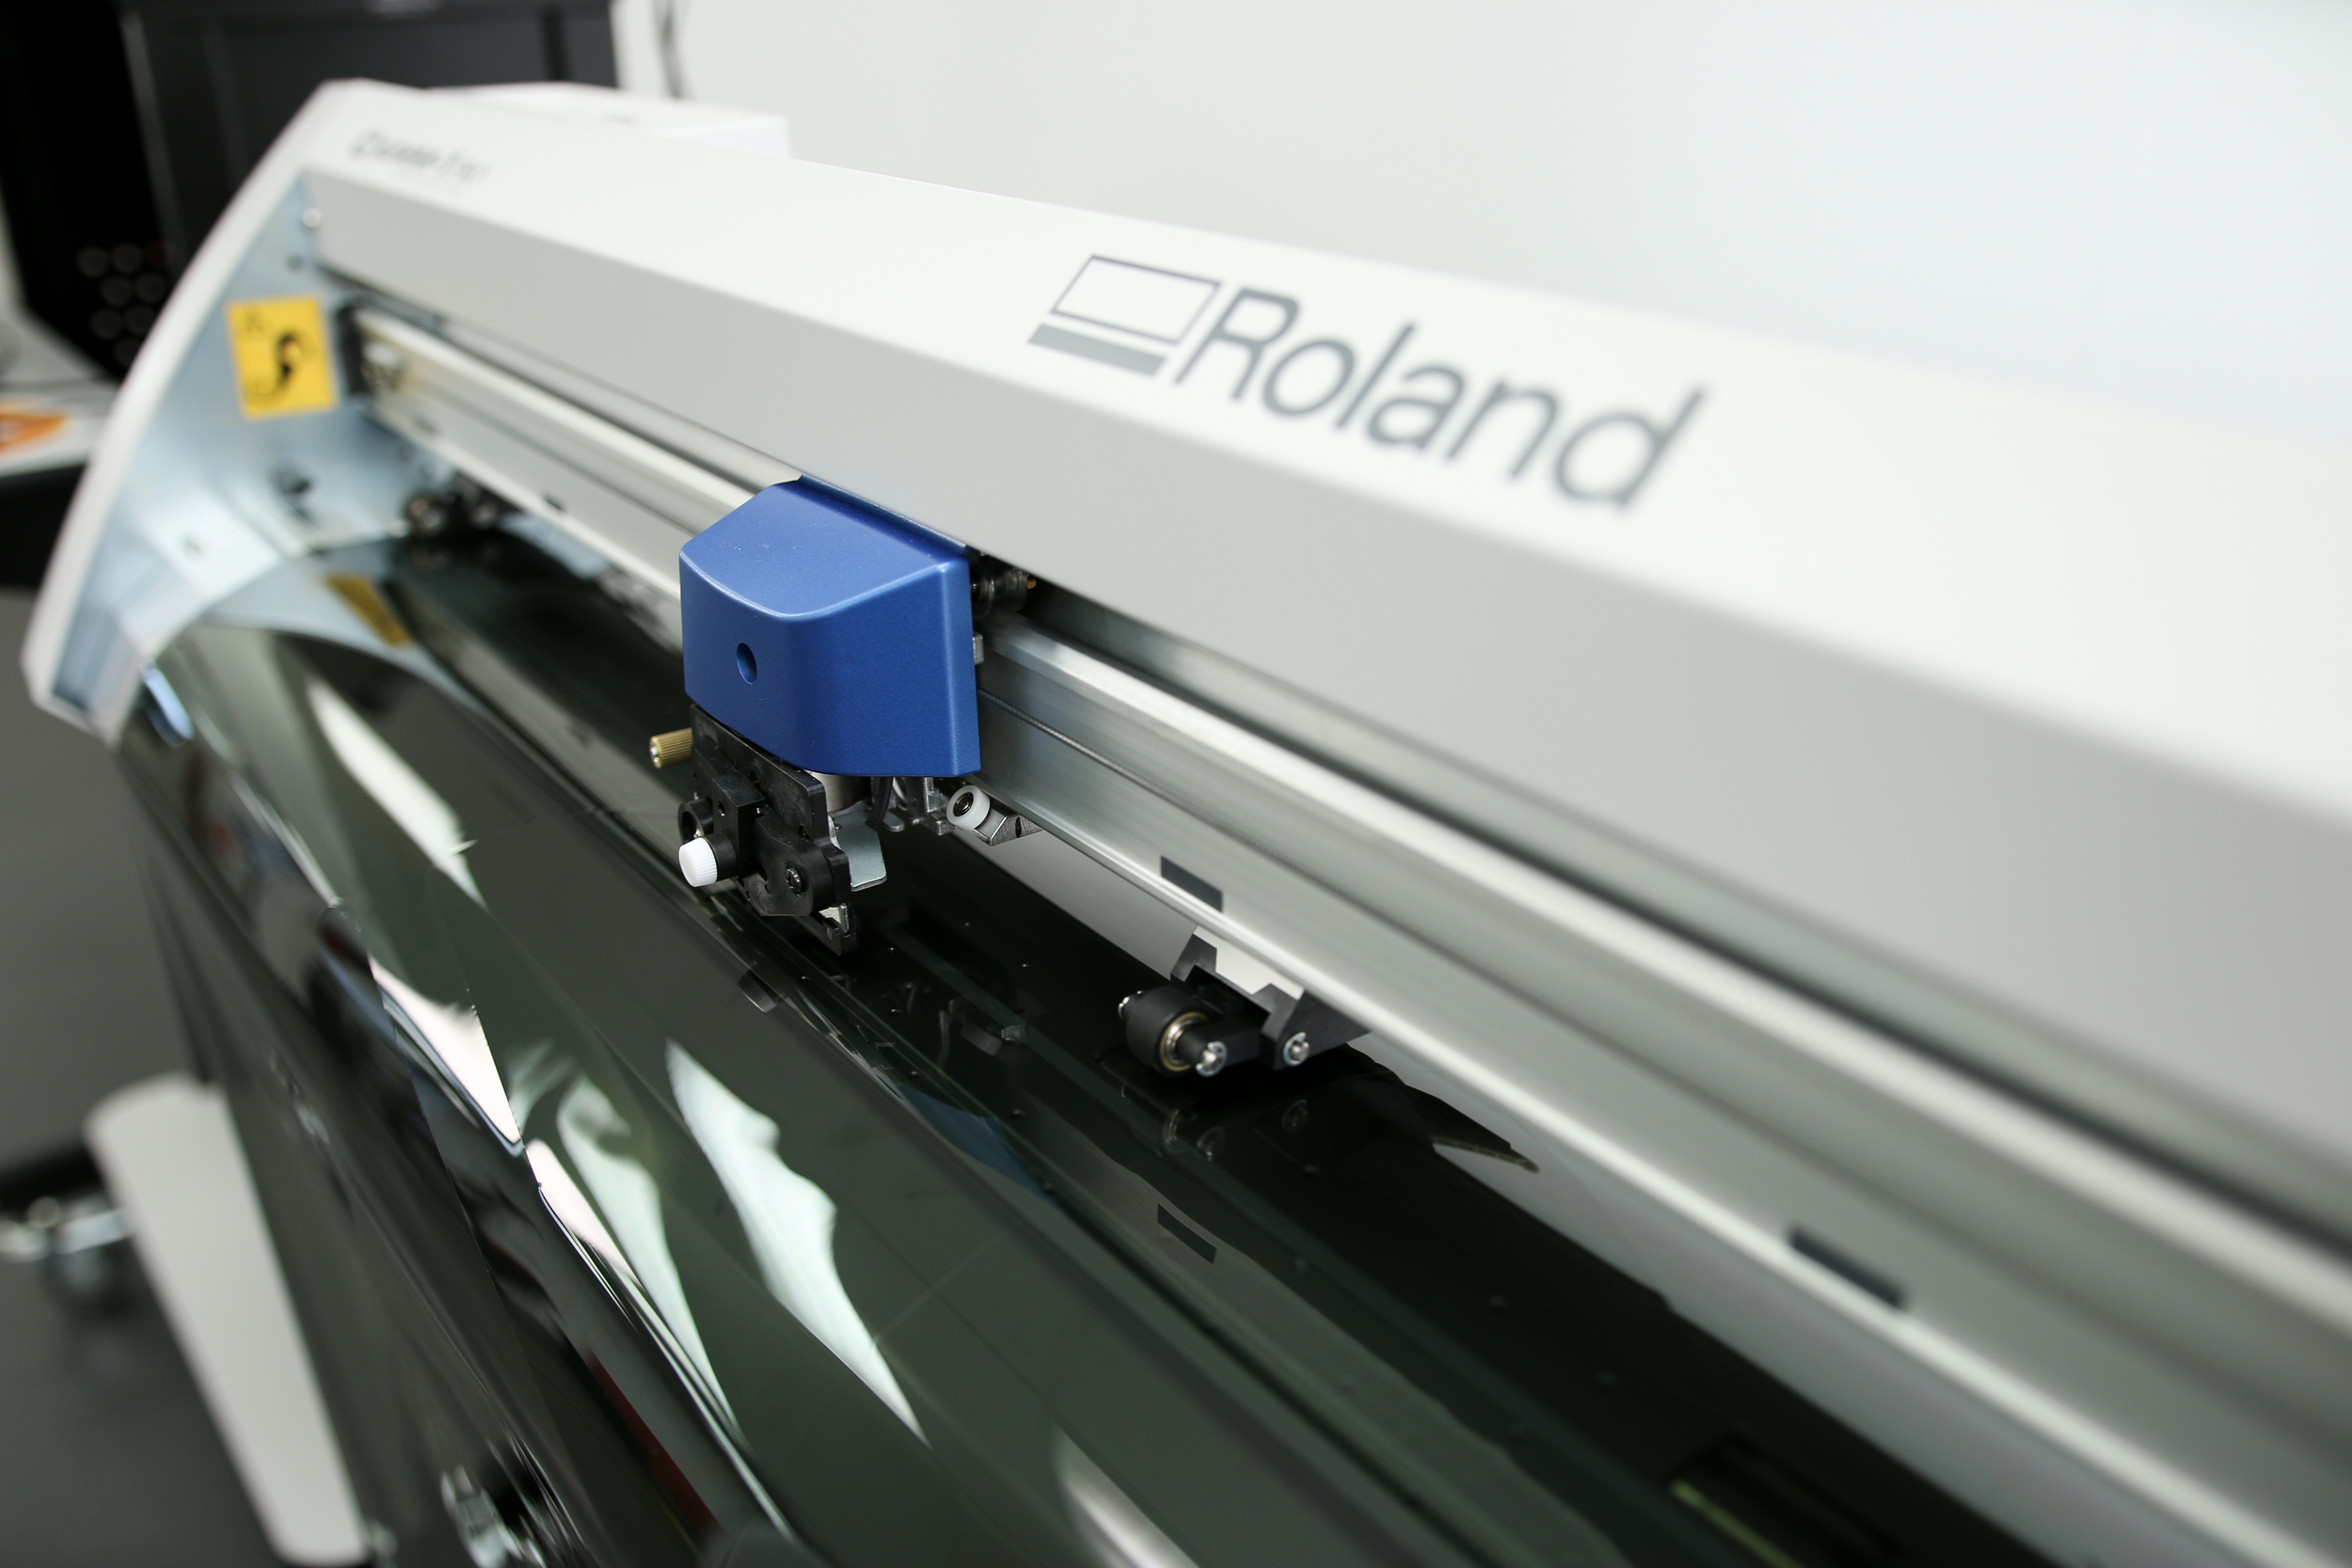 This is an example of the machine used to precision cut our LLumar window film. It is known as a 'plotter'.